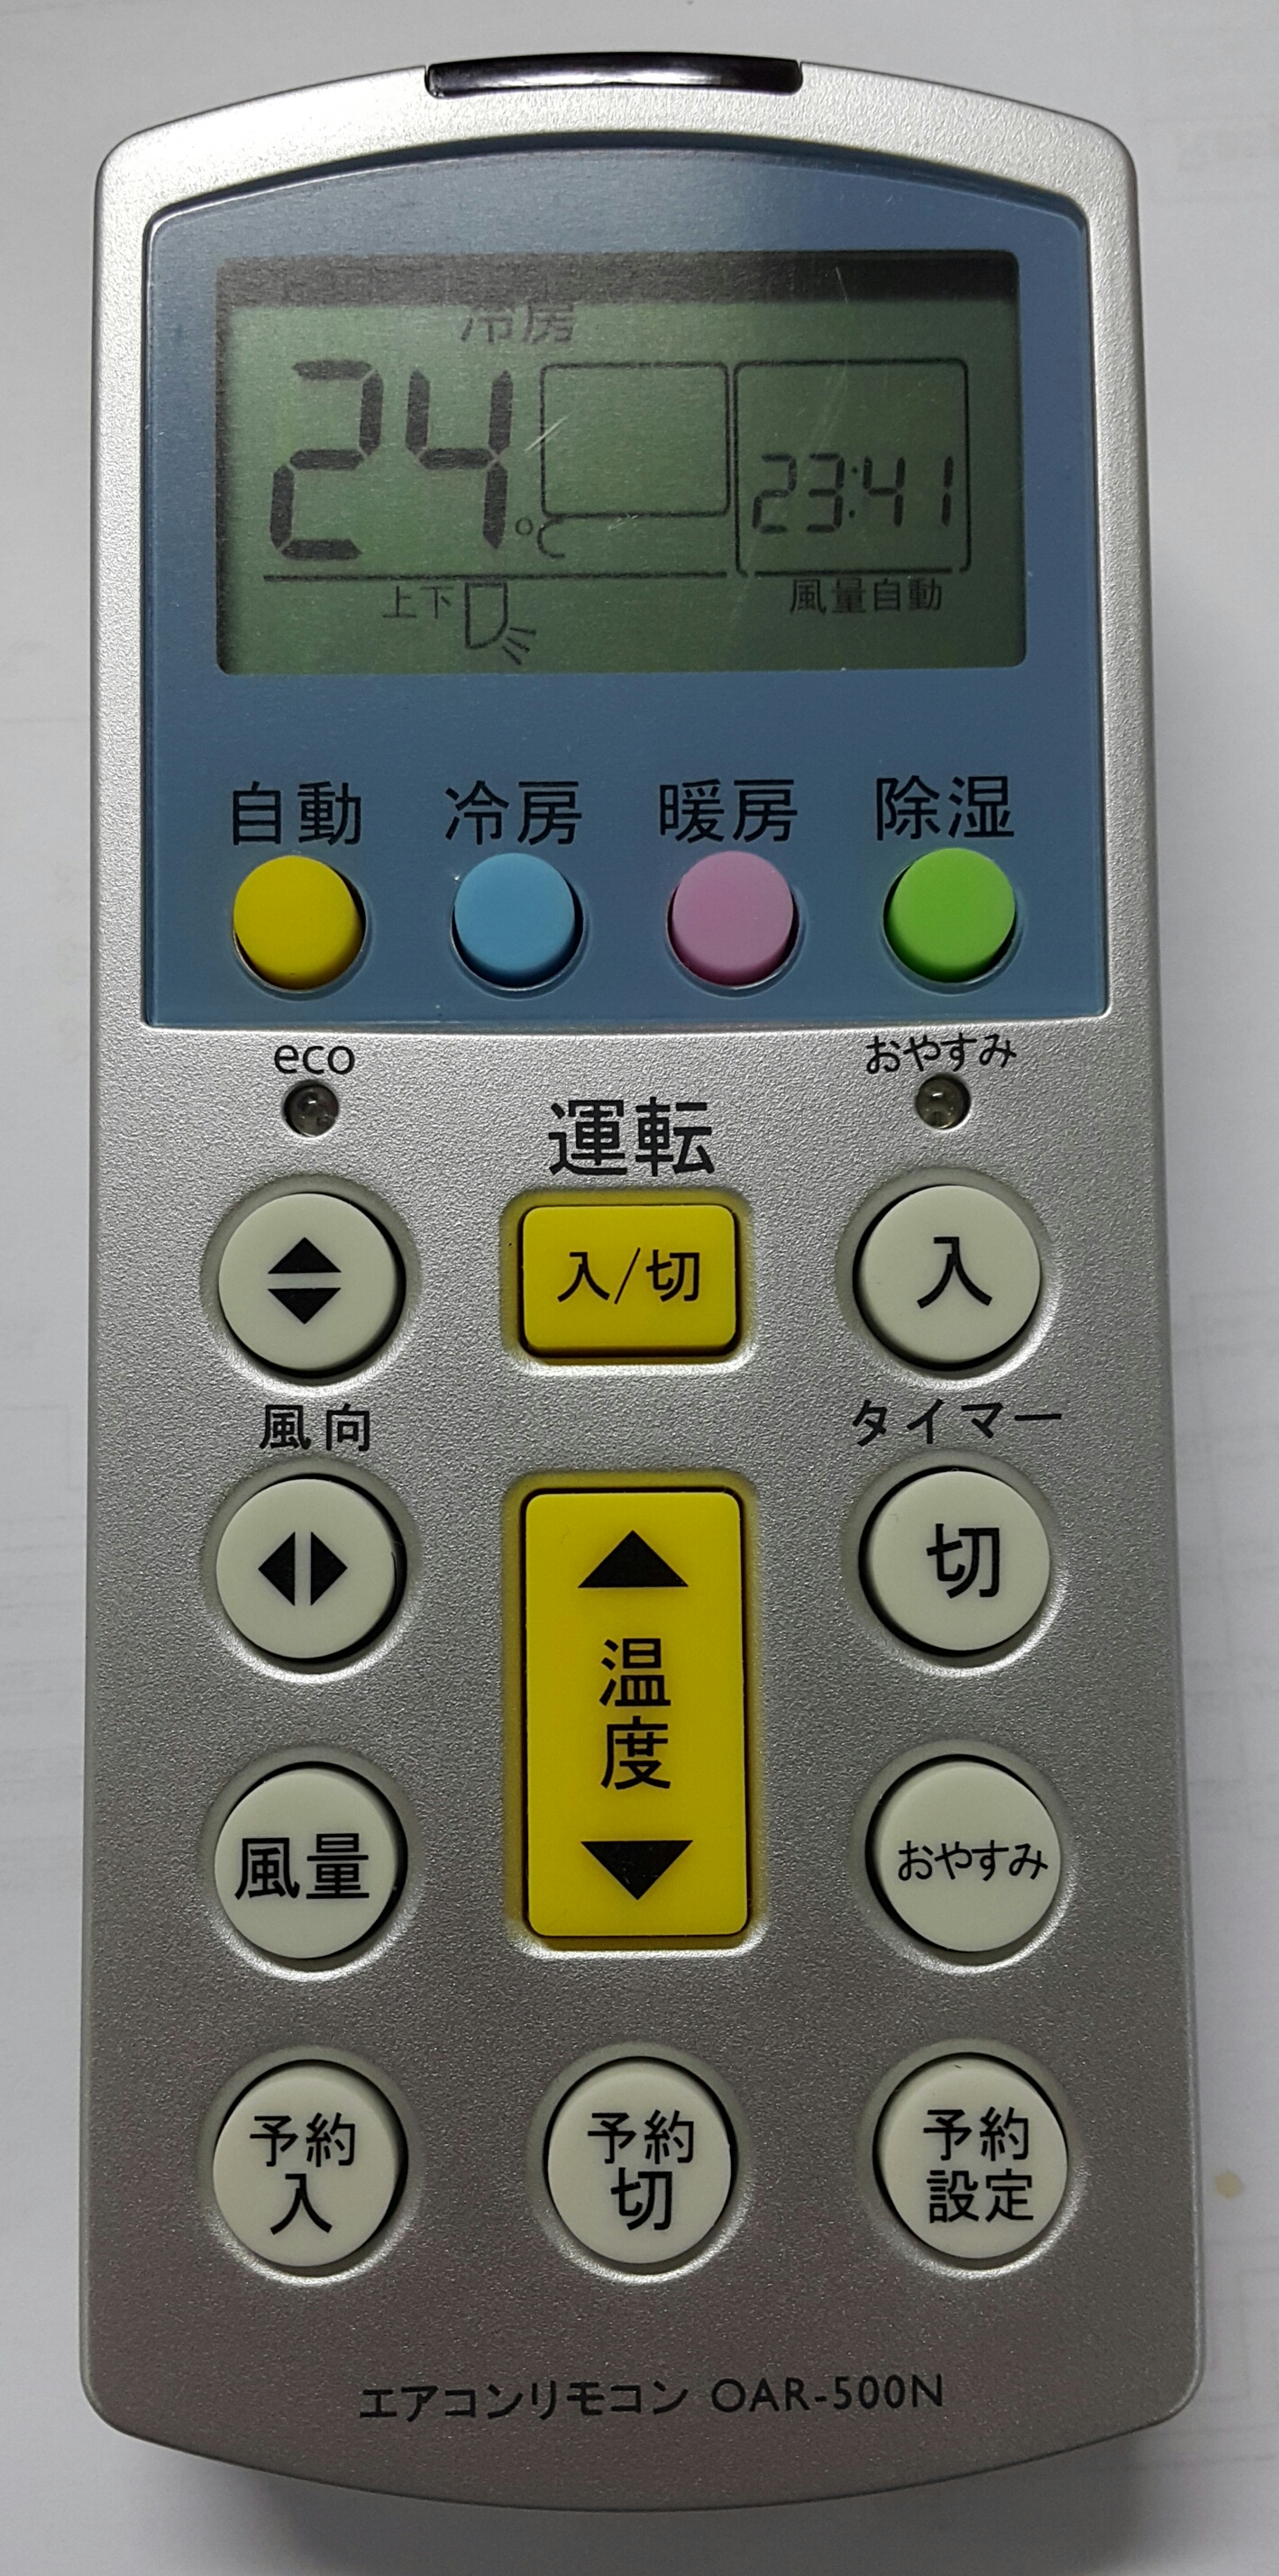 TOSHIBA_MJPAC26_AIRCONDITIONER_cover.png